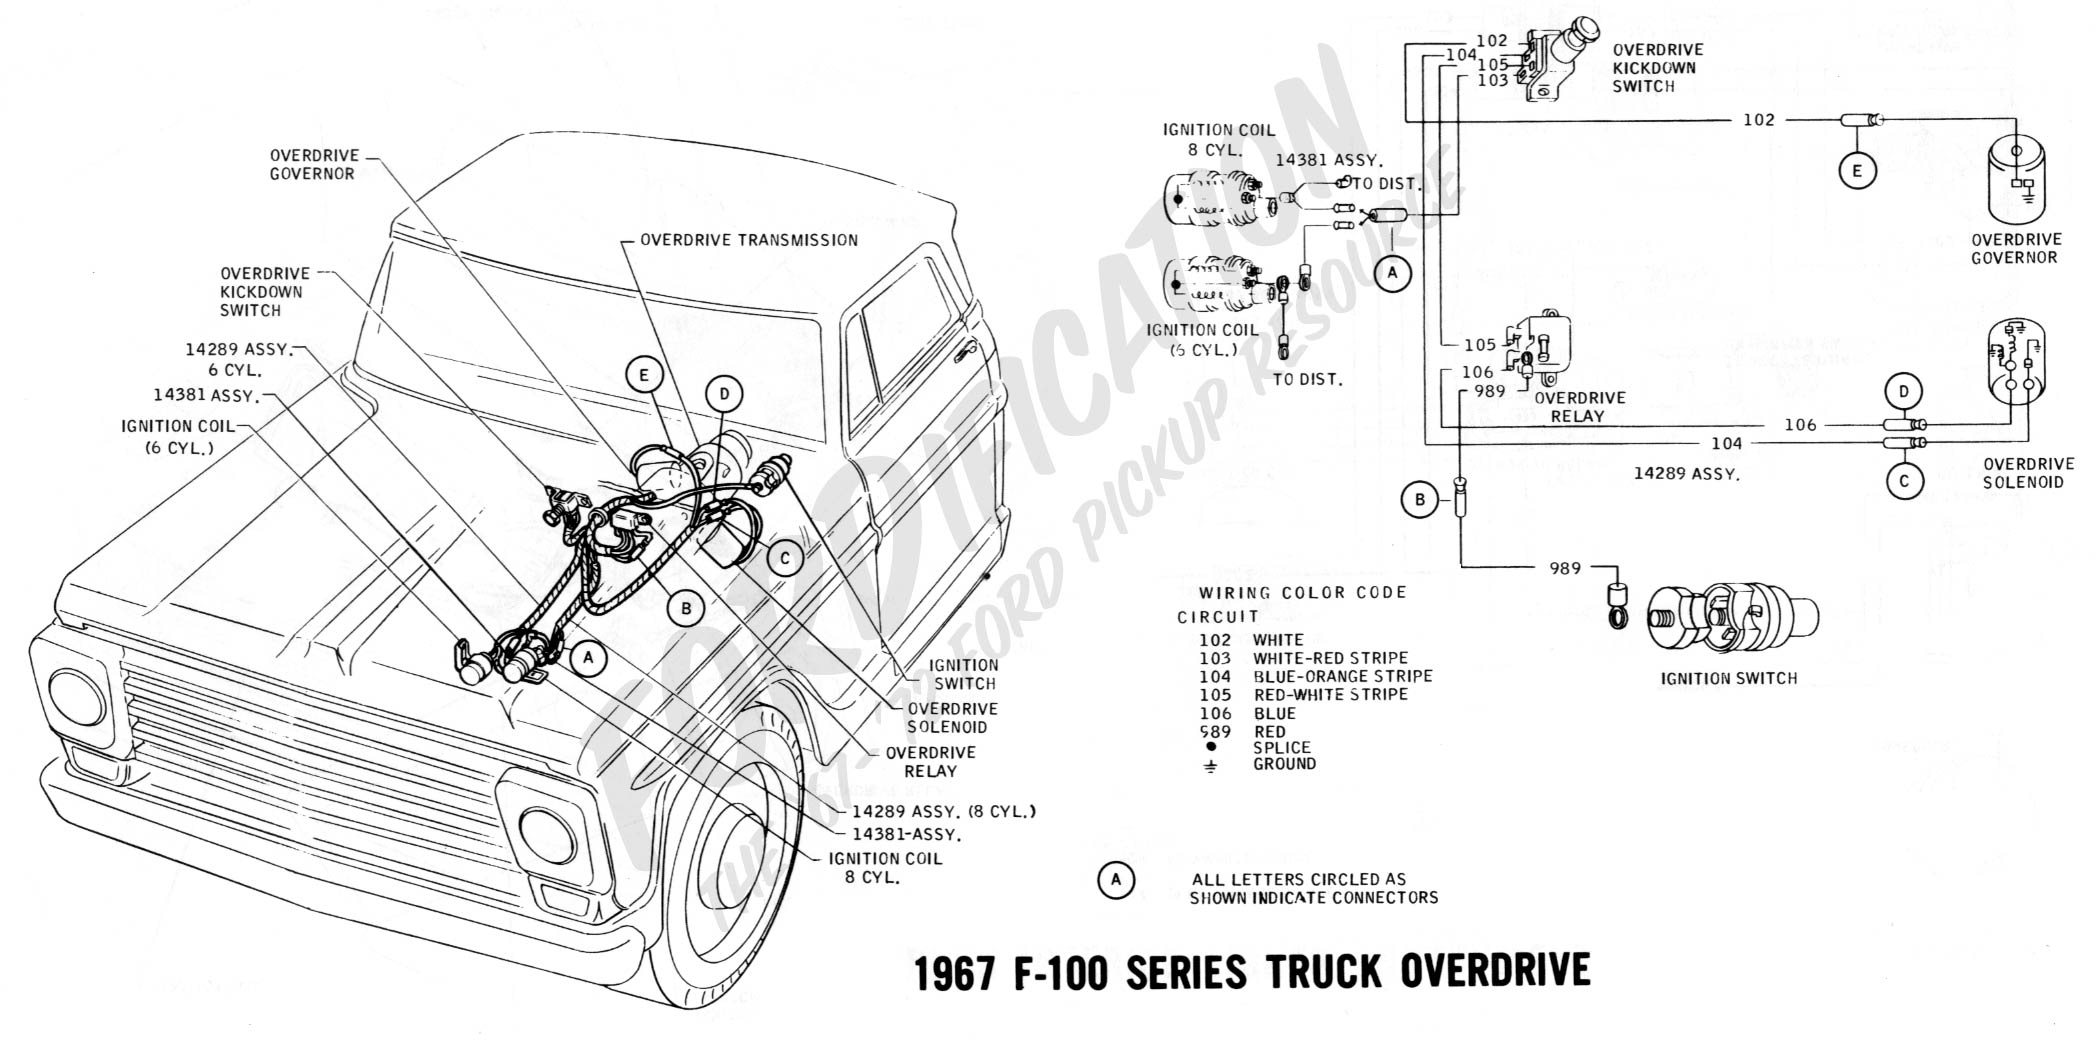 1968 ford truck diagram schematics wiring diagrams u2022 rh  seniorlivinguniversity co 1975 ford f100 vacuum diagram 1975 ford f100  wiring diagram